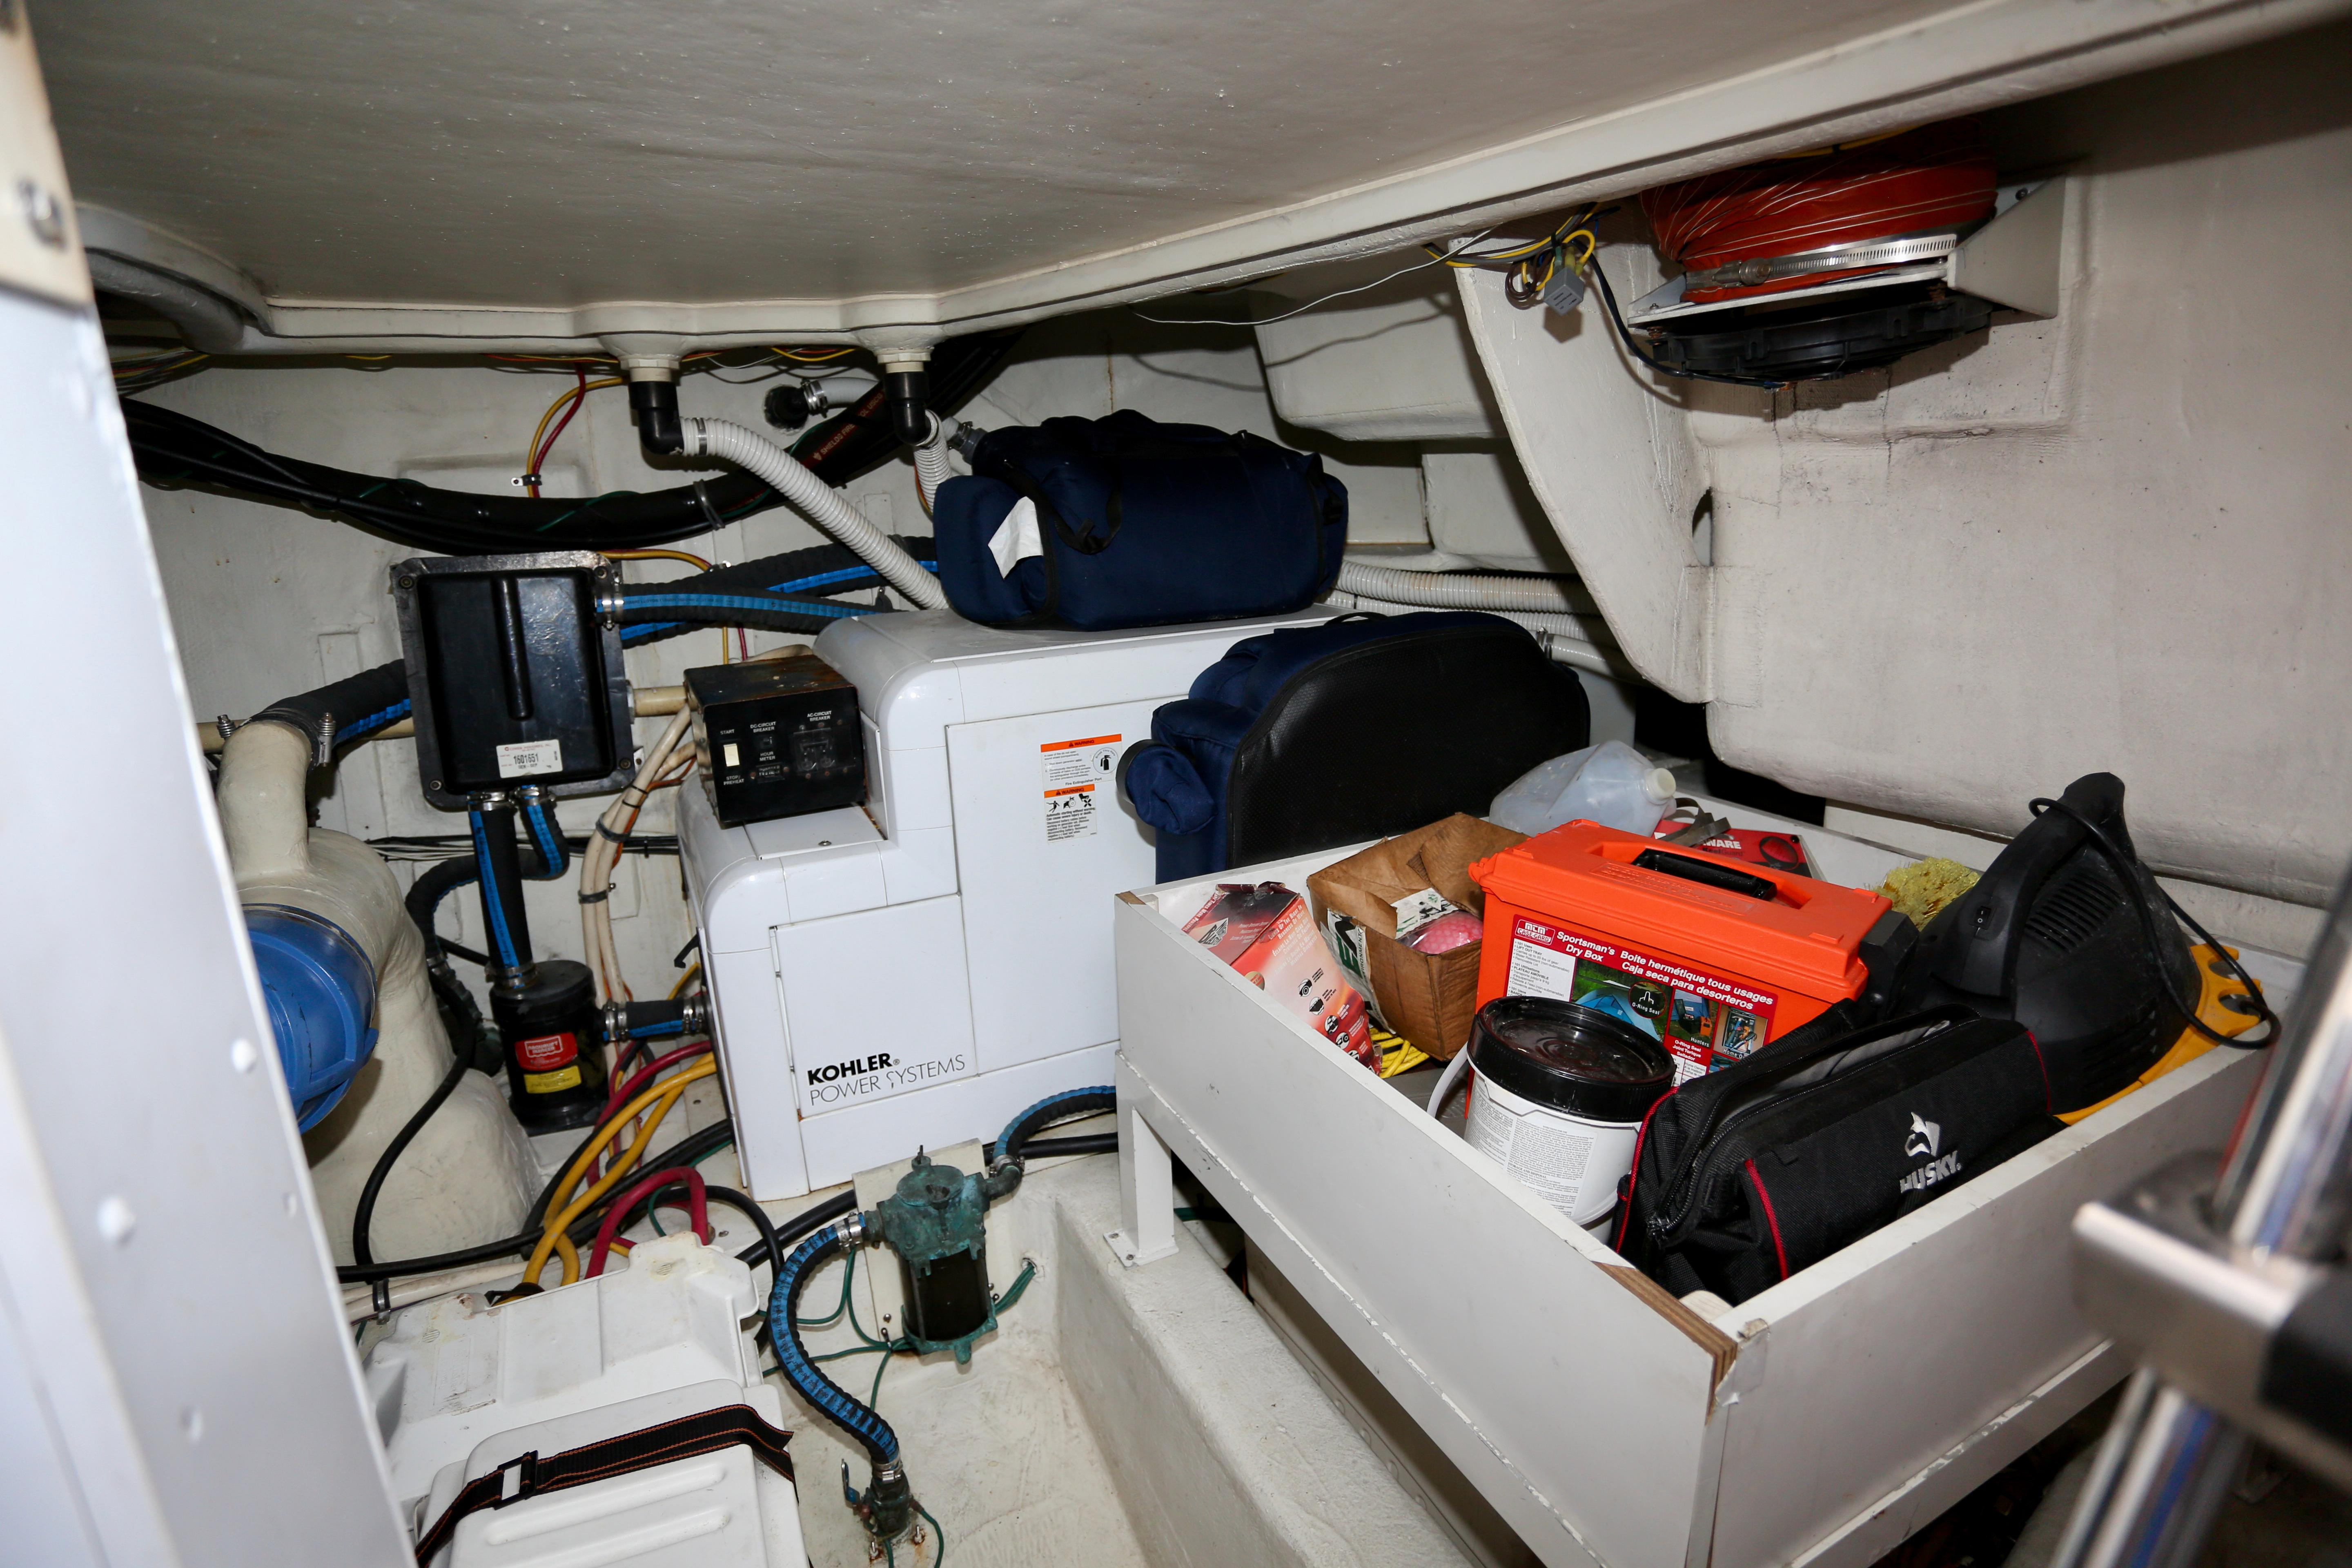 Engine Compartment Storage and Genset